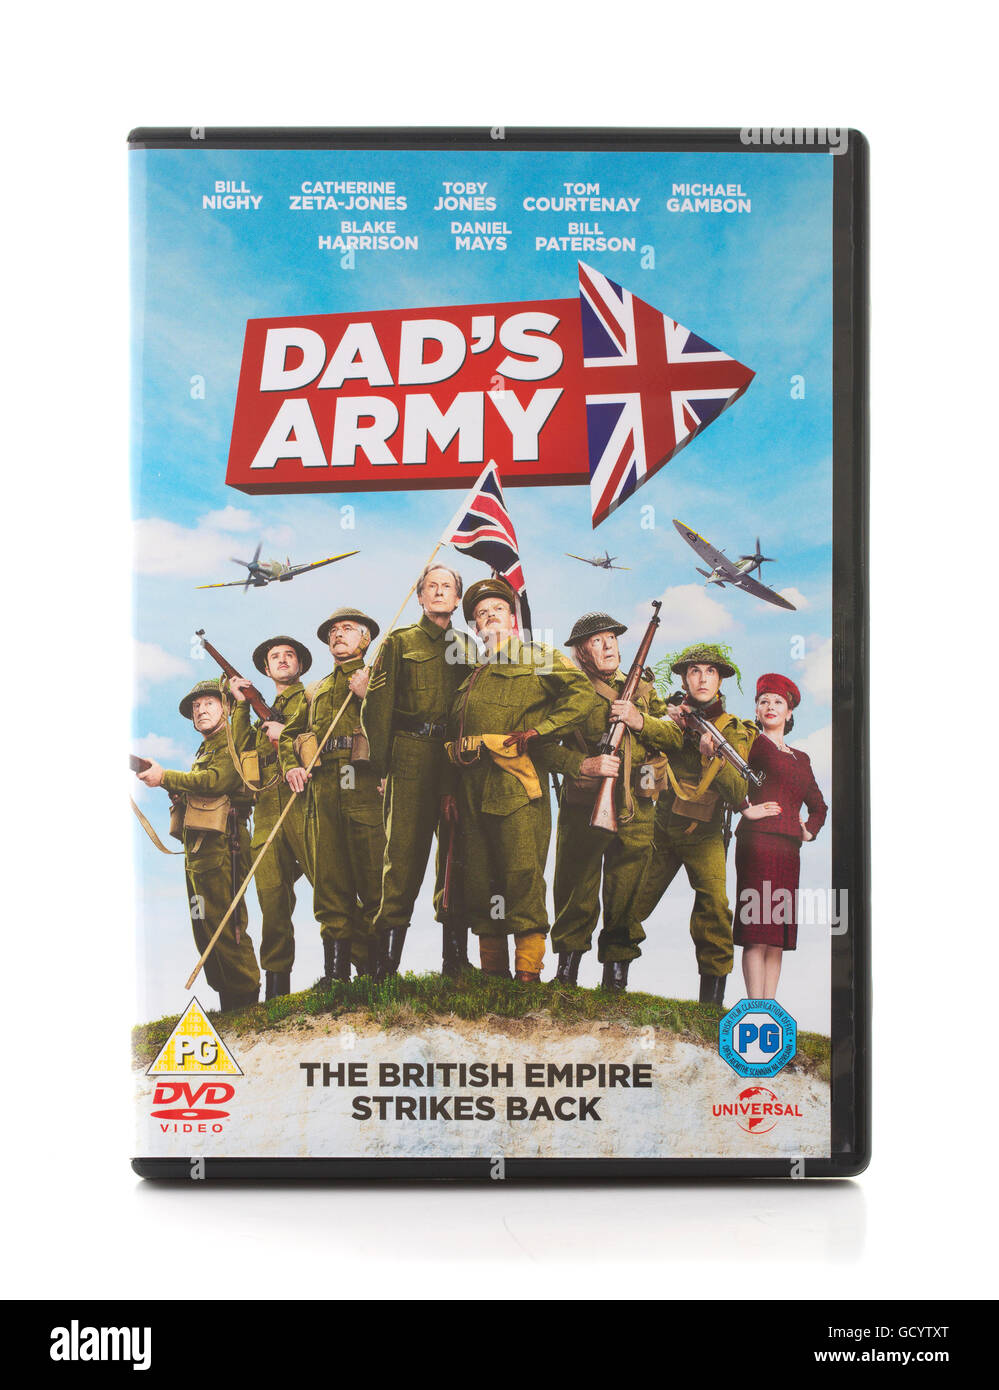 Dad's Army DVD, The British Empire Strikes Back - Stock Image